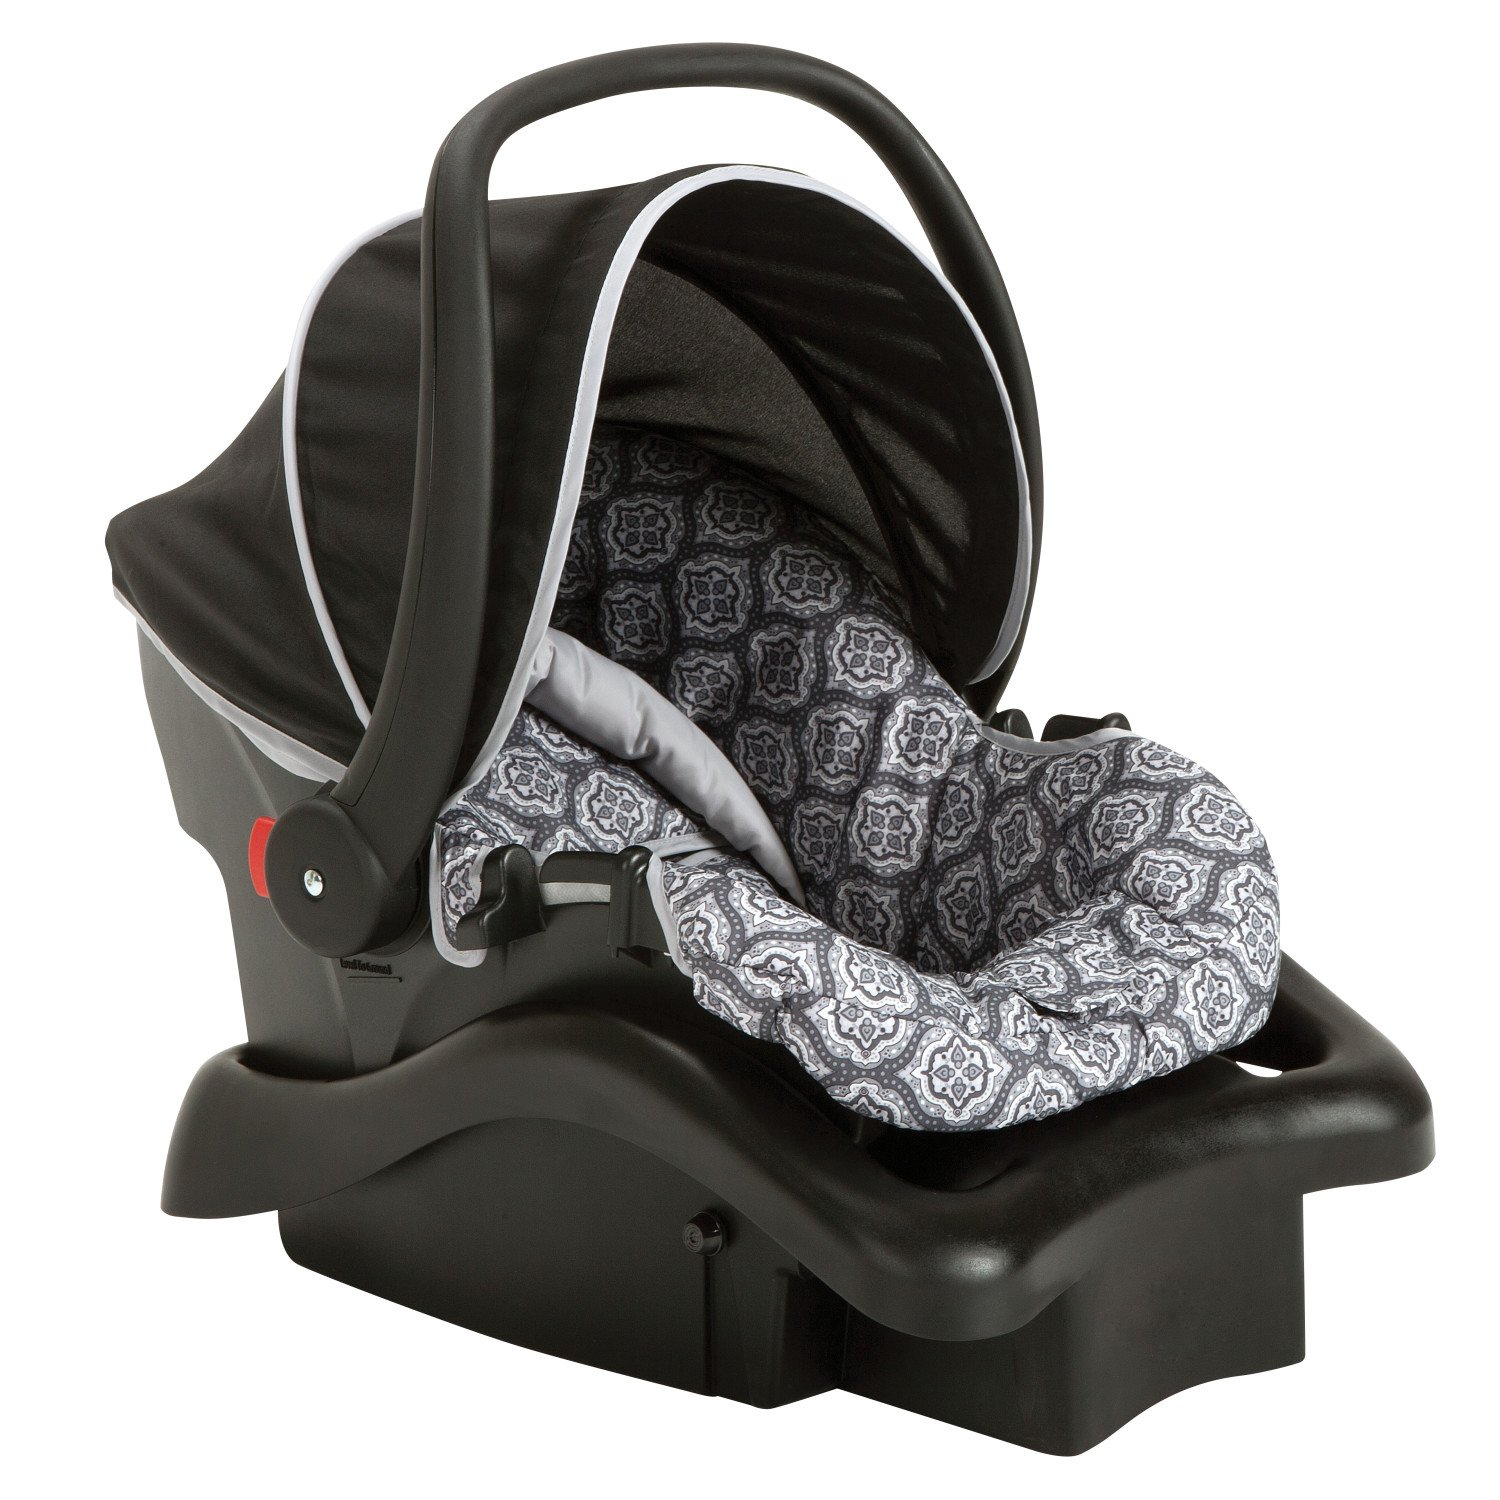 Amazon.com : Safety 1st Light \'n Comfy Elite Infant Car Seat ...